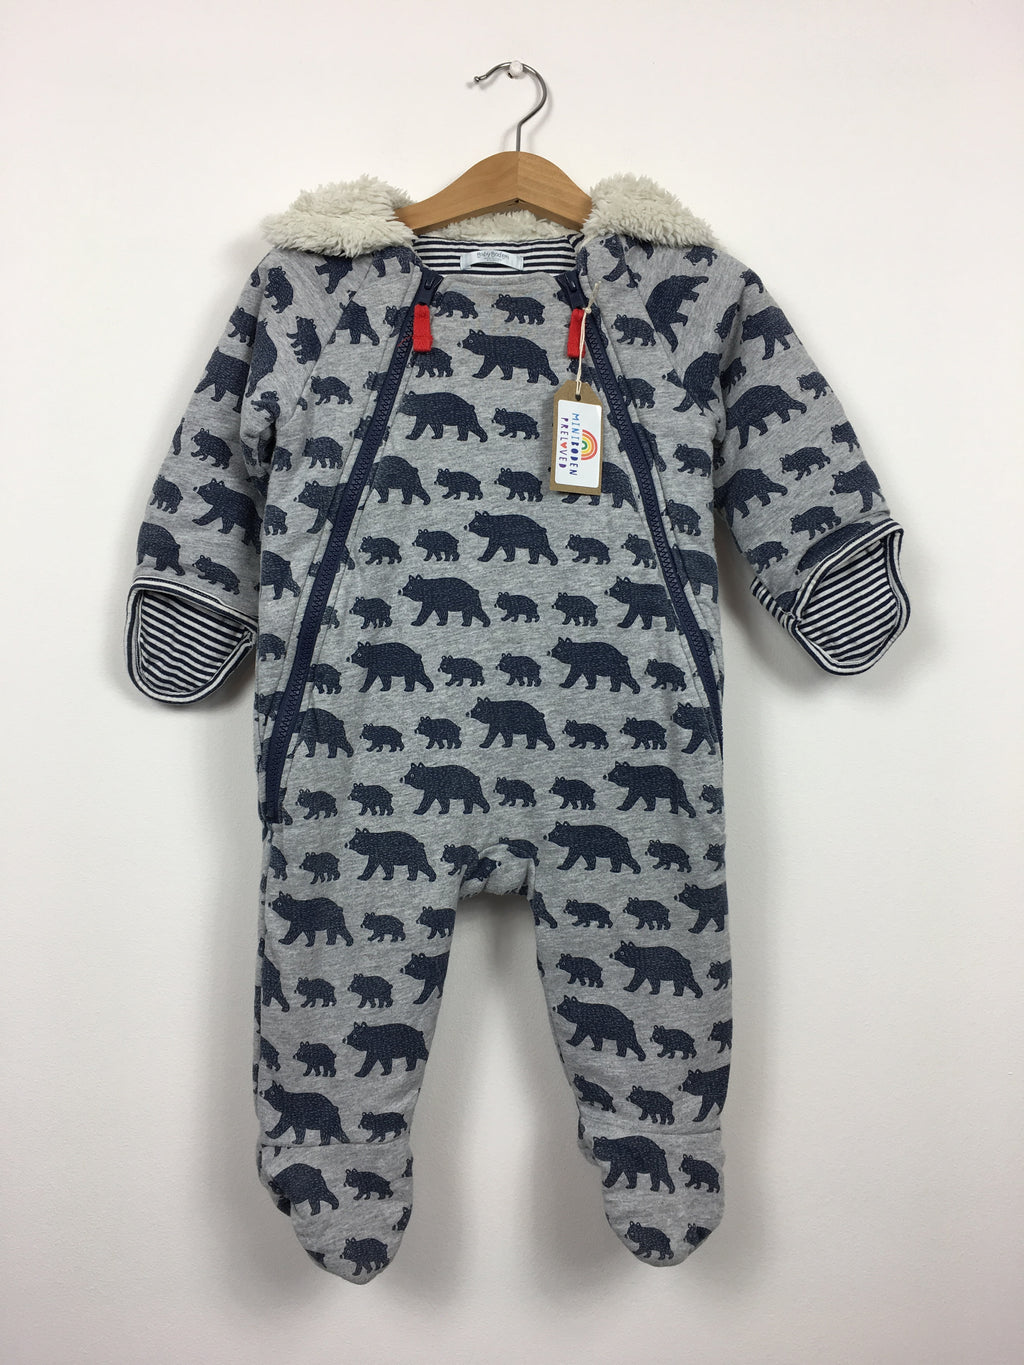 Bear Print Cotton Snowsuit (6-12 Months)